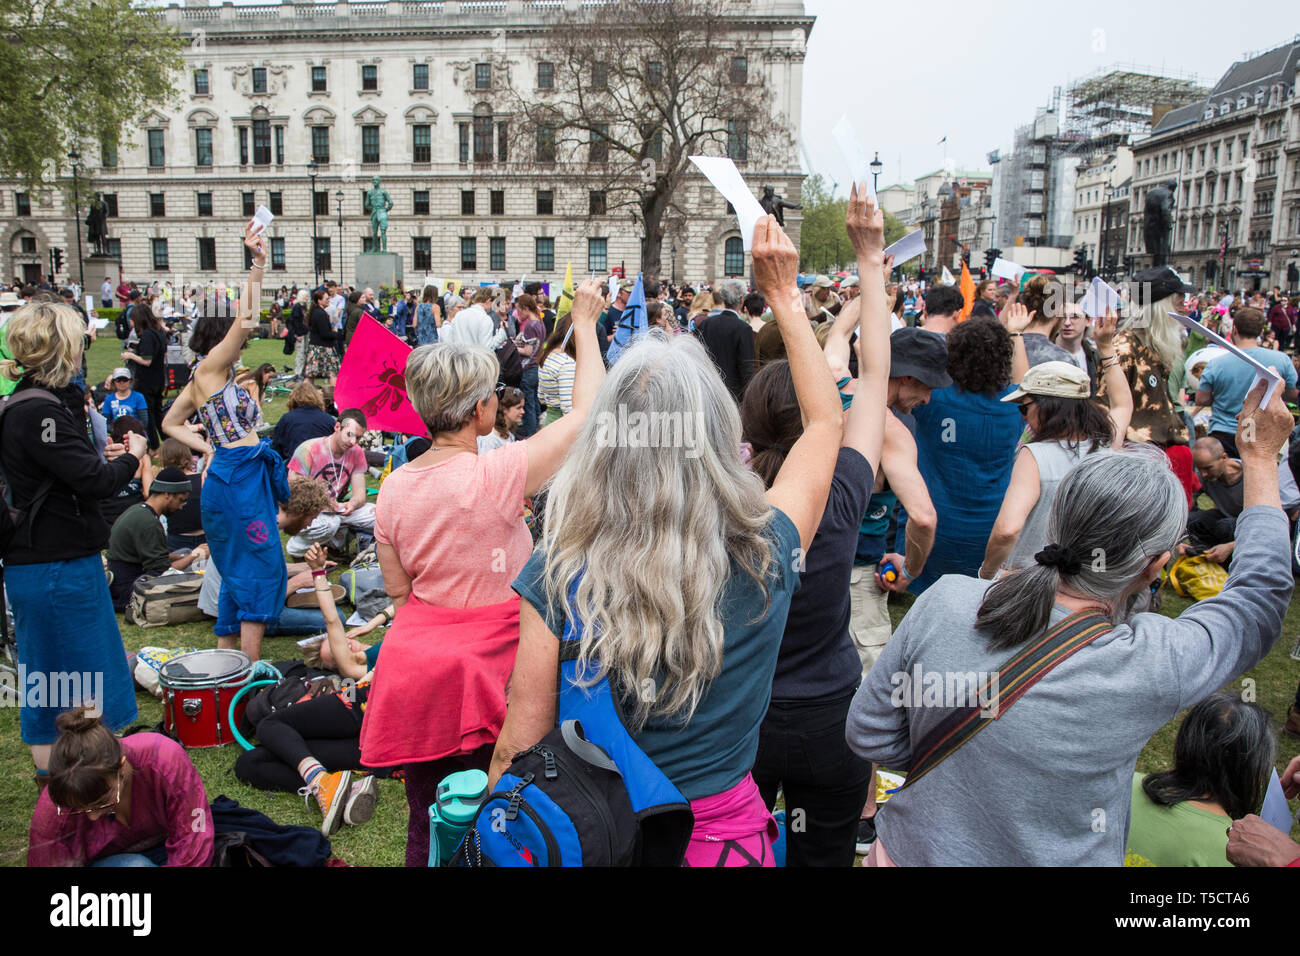 London, UK. 23rd April 2019. Climate change activists from Extinction Rebellion attending an assembly in Parliament Square hold up letters to their Members of Parliament requesting meetings to discuss the issue of climate change. Activists later tried to deliver their letters to Parliament, but all but ten were prevented from doing so by the Metropolitan Police. Credit: Mark Kerrison/Alamy Live News - Stock Image